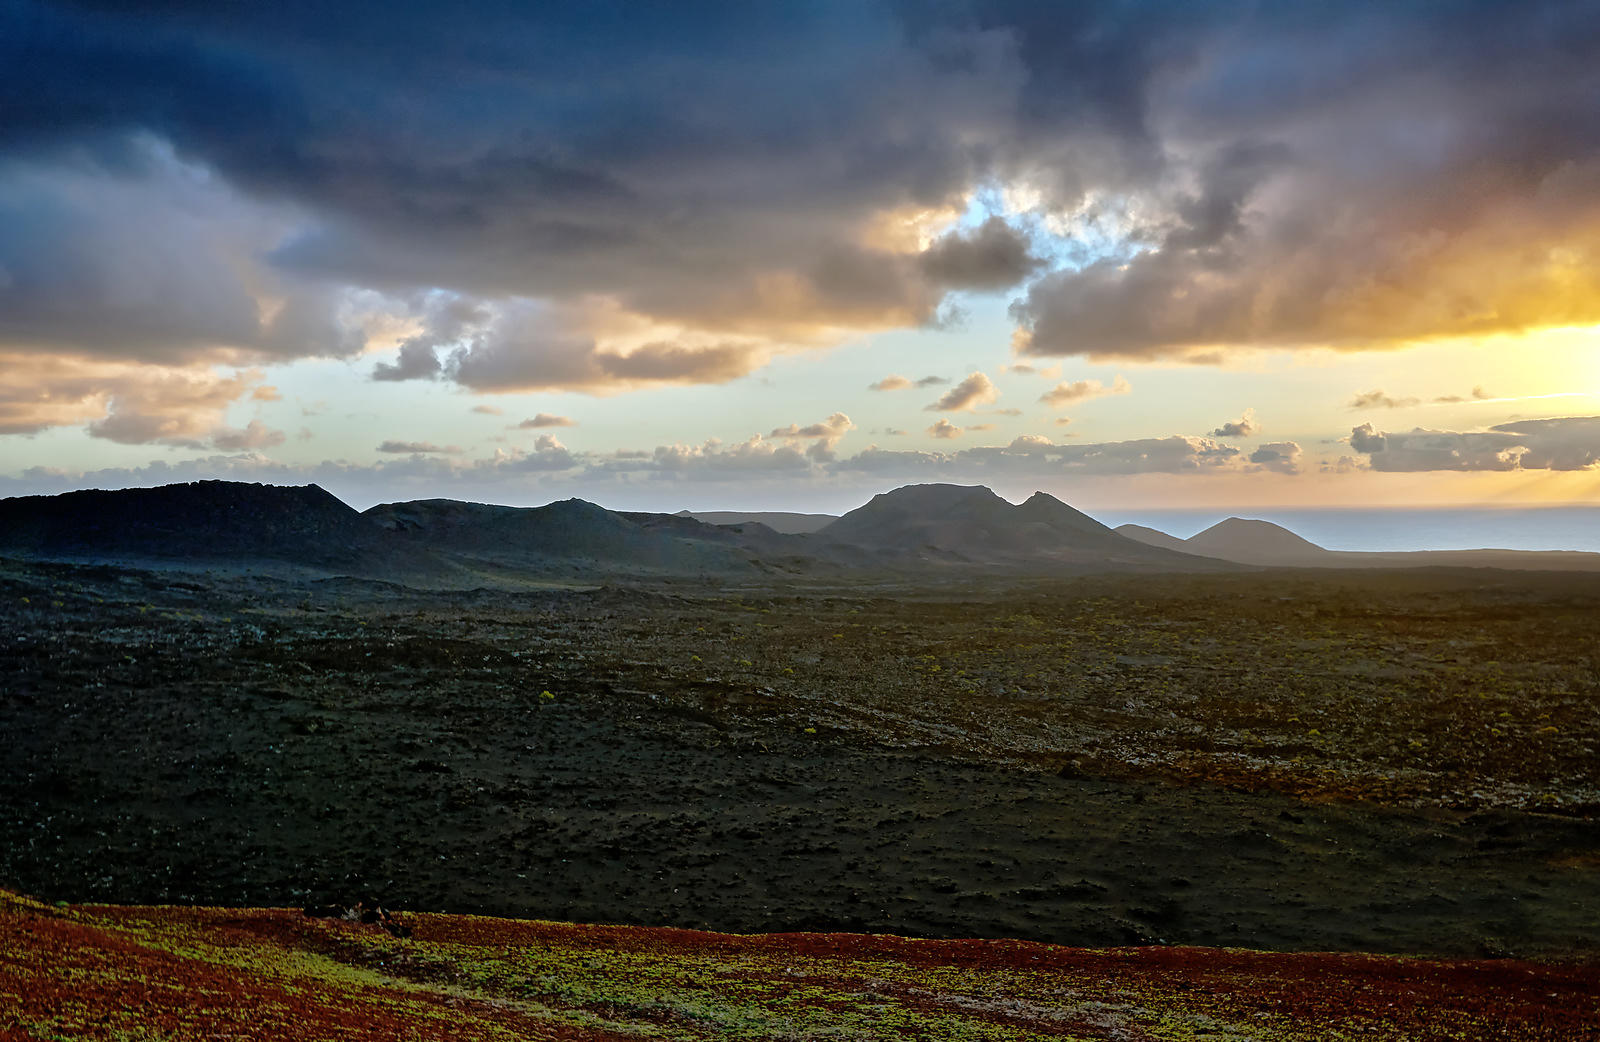 Sunset over the coast in Timanfaya national park, Lanzarote